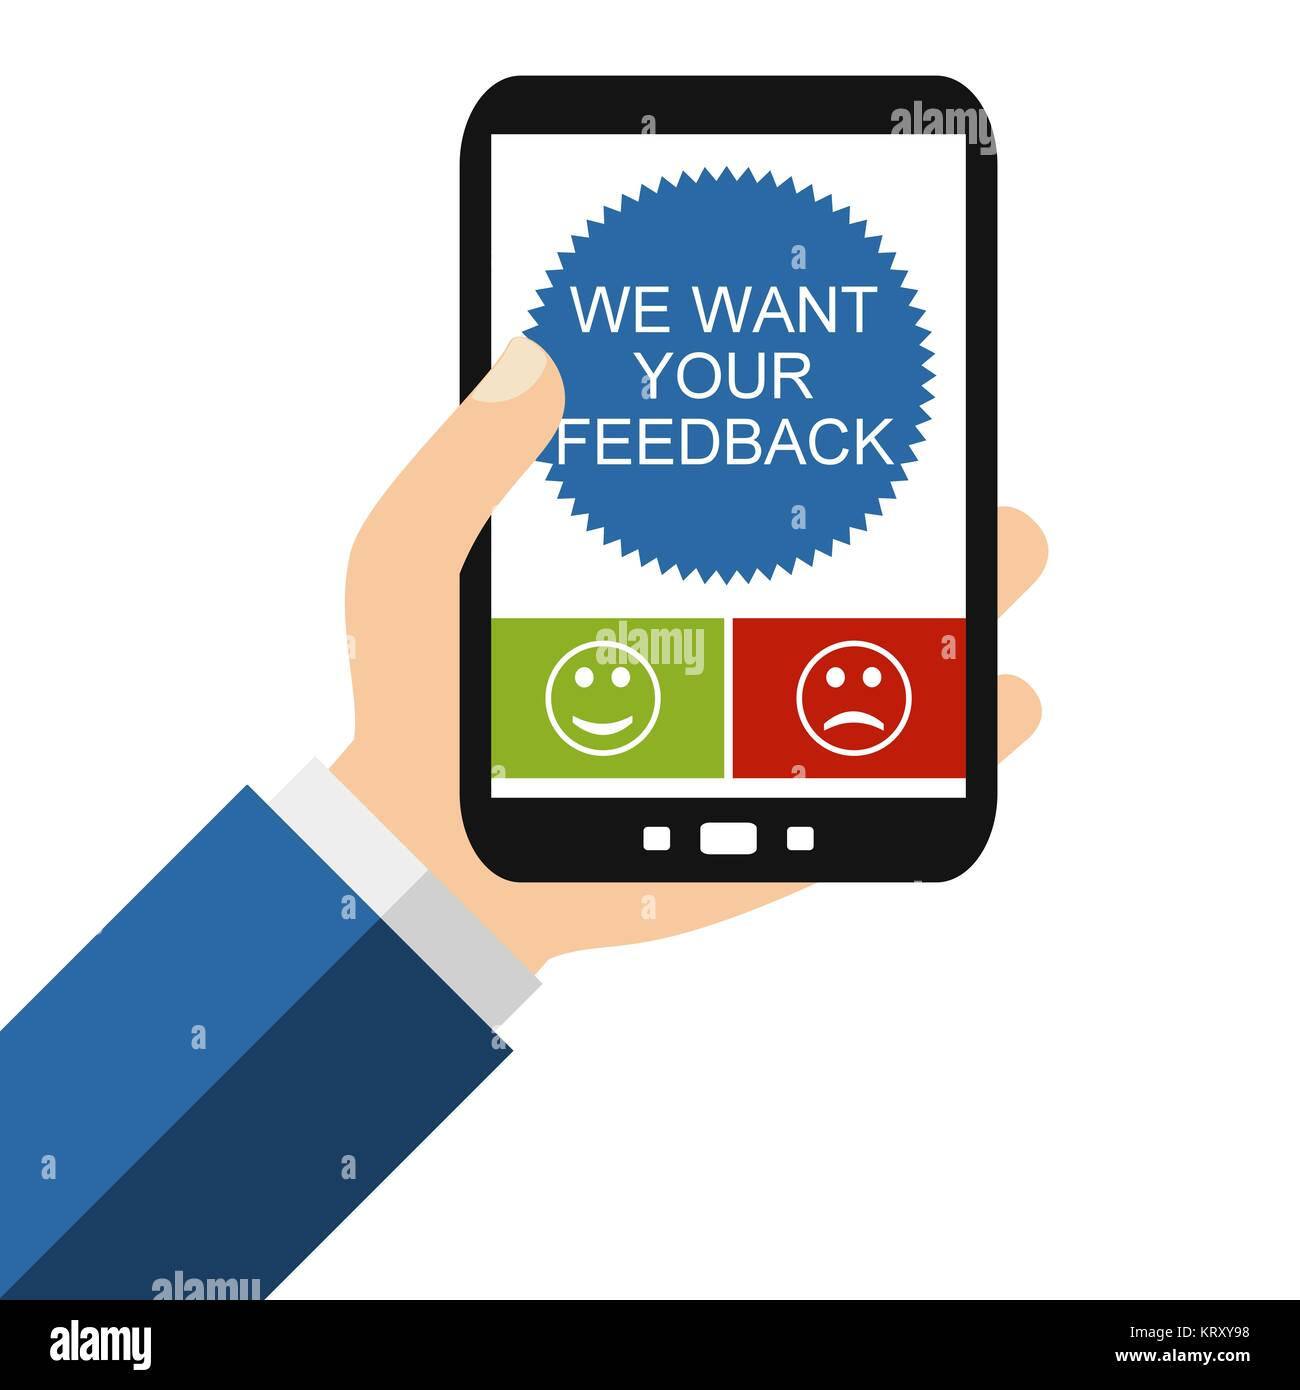 we want your feedback on the smartphone - Stock Image